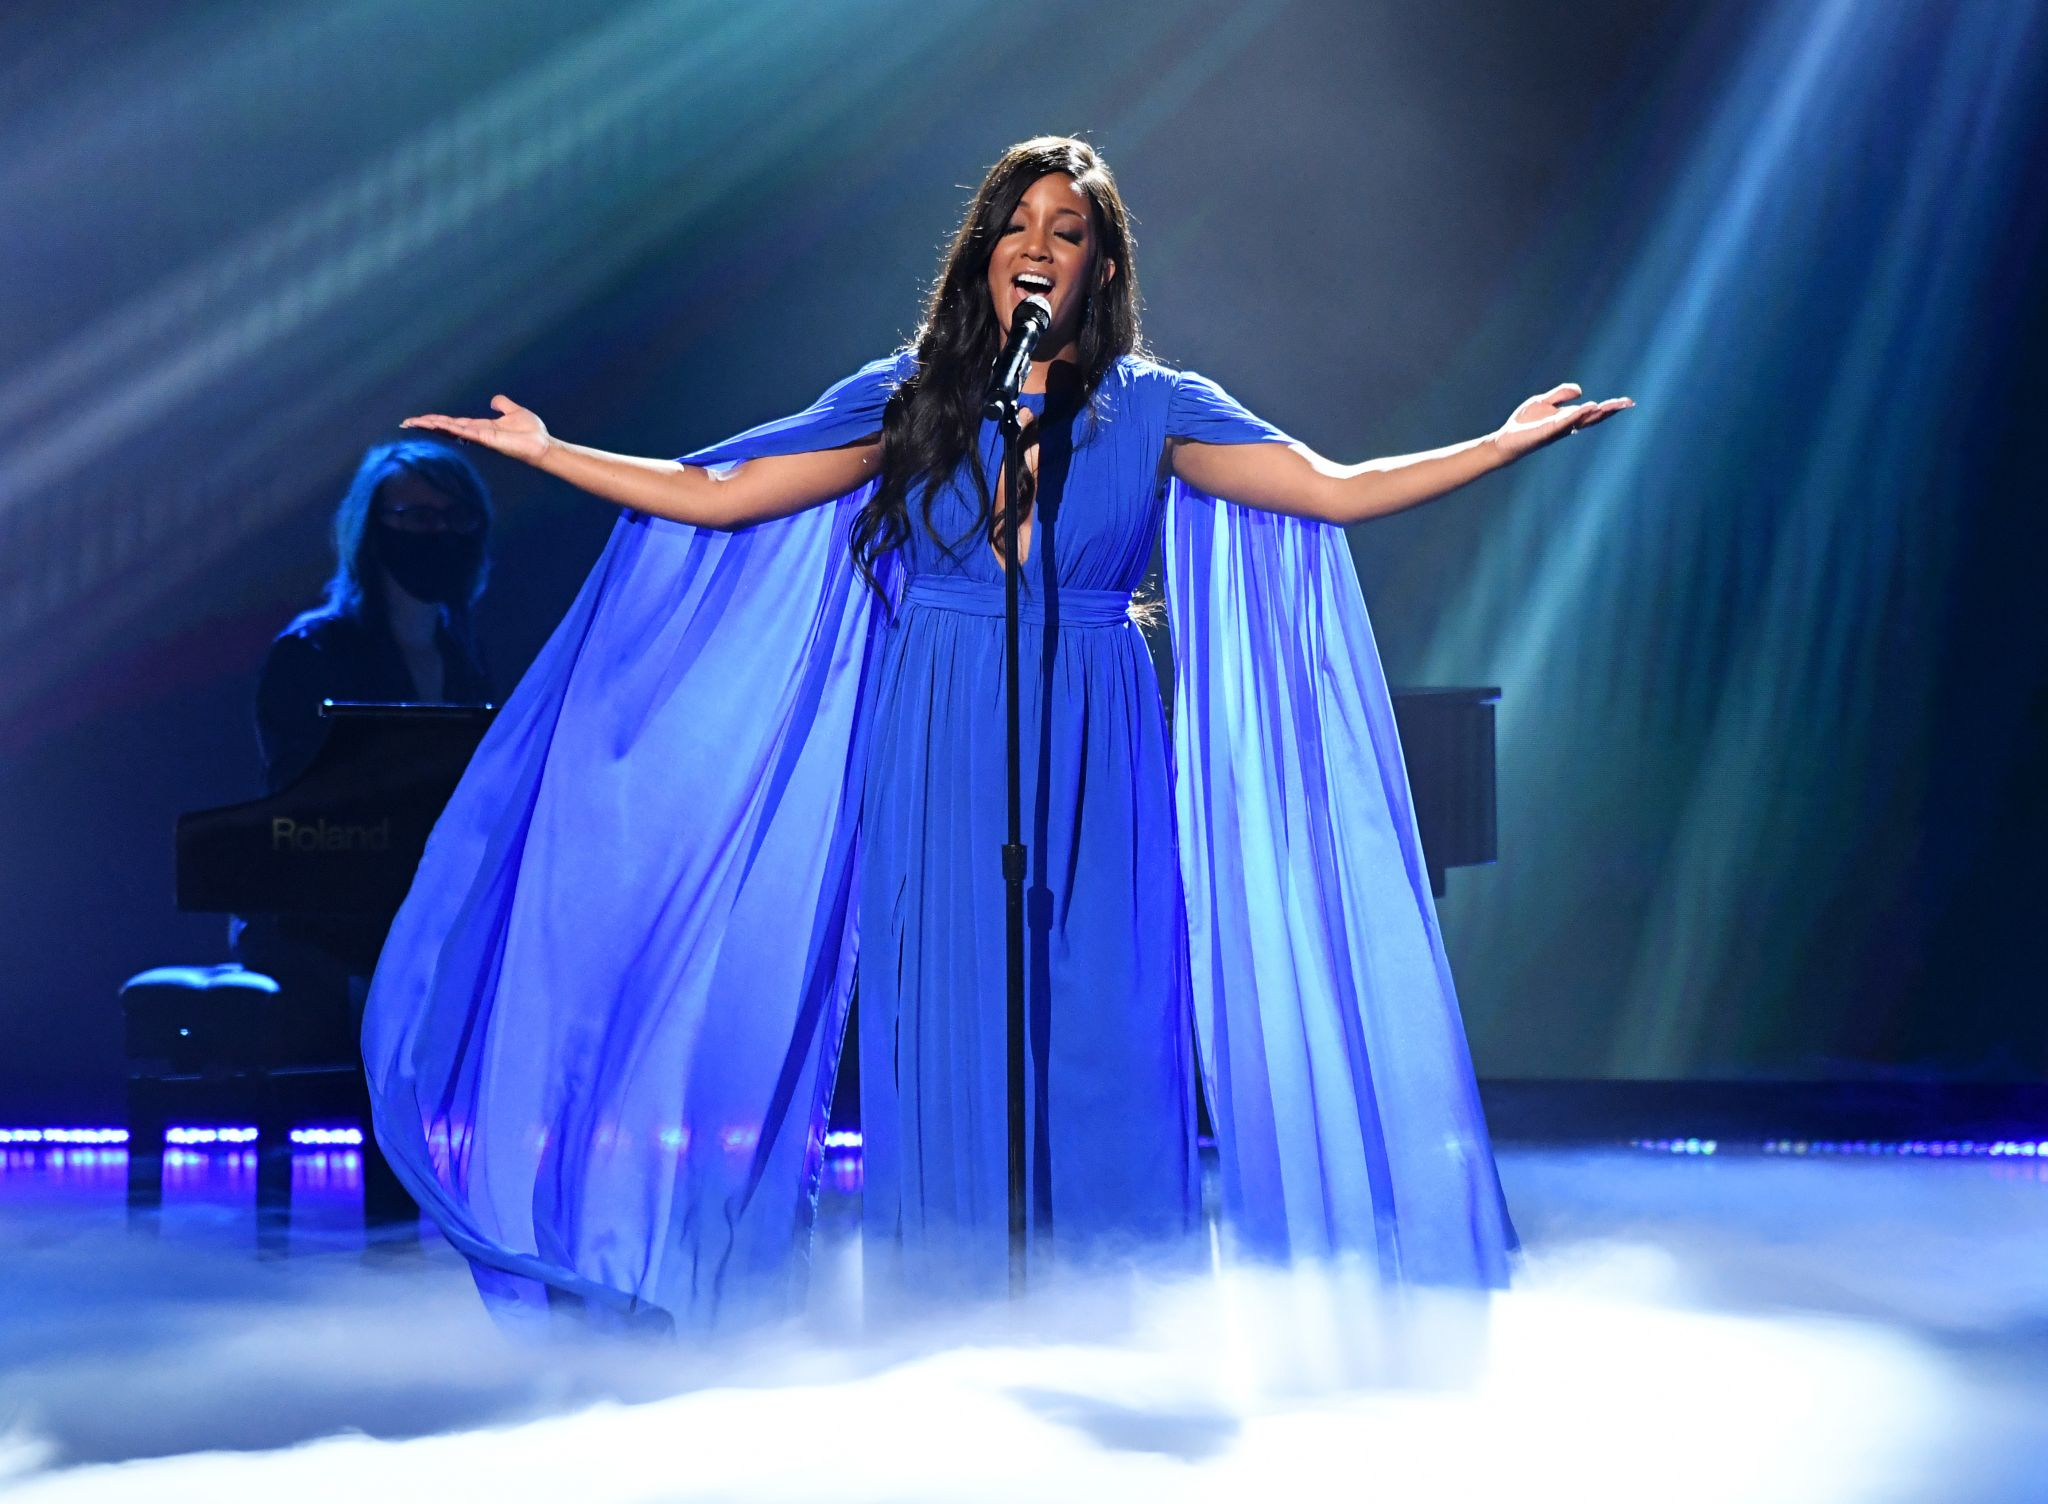 Texan Mickey Guyton makes history as first Black woman to host ACM Awards